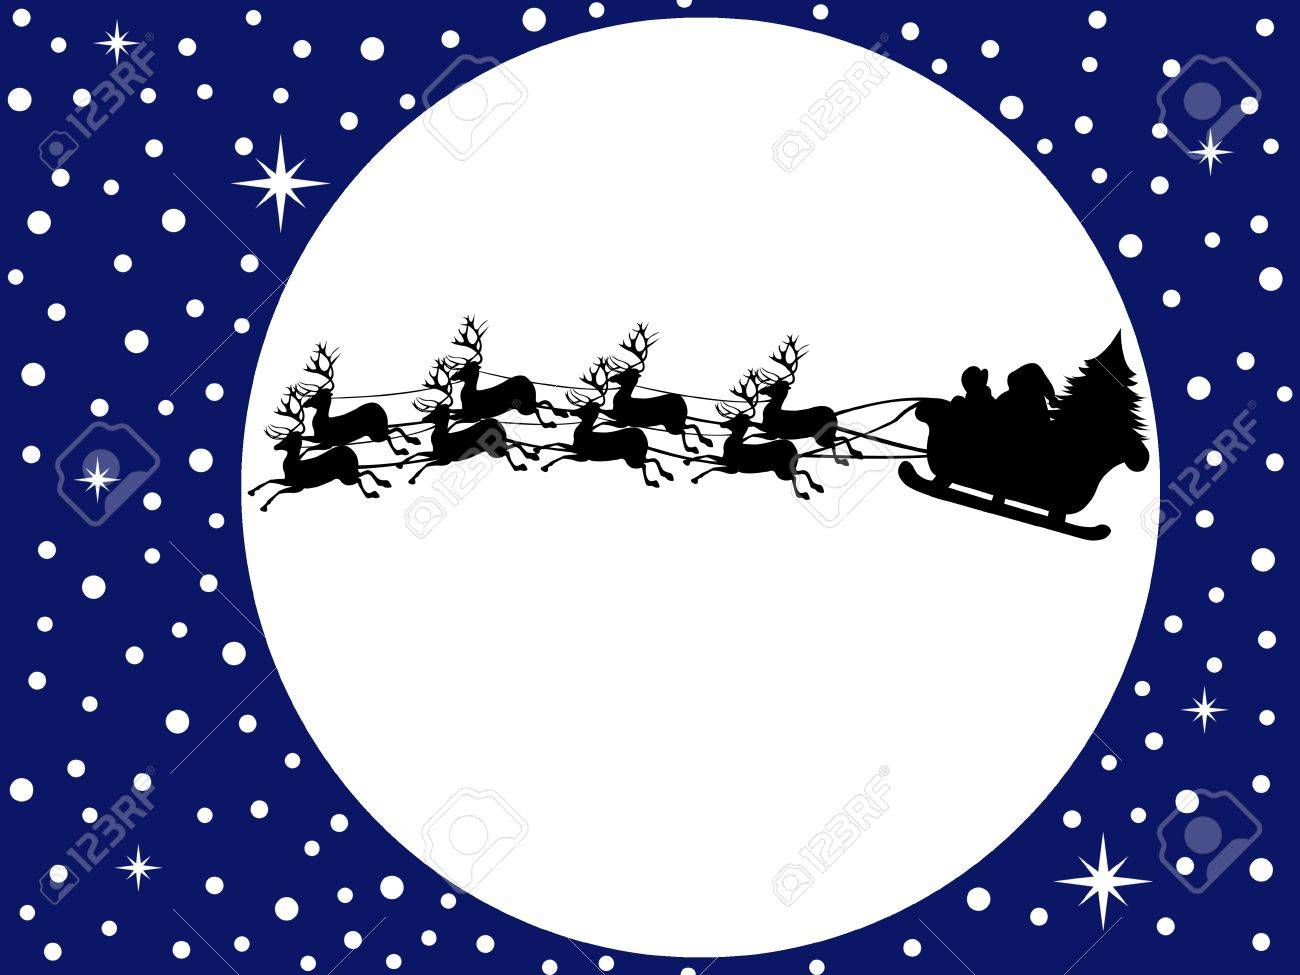 Santa claus driving in a sledge with blue sky in background - 10989656